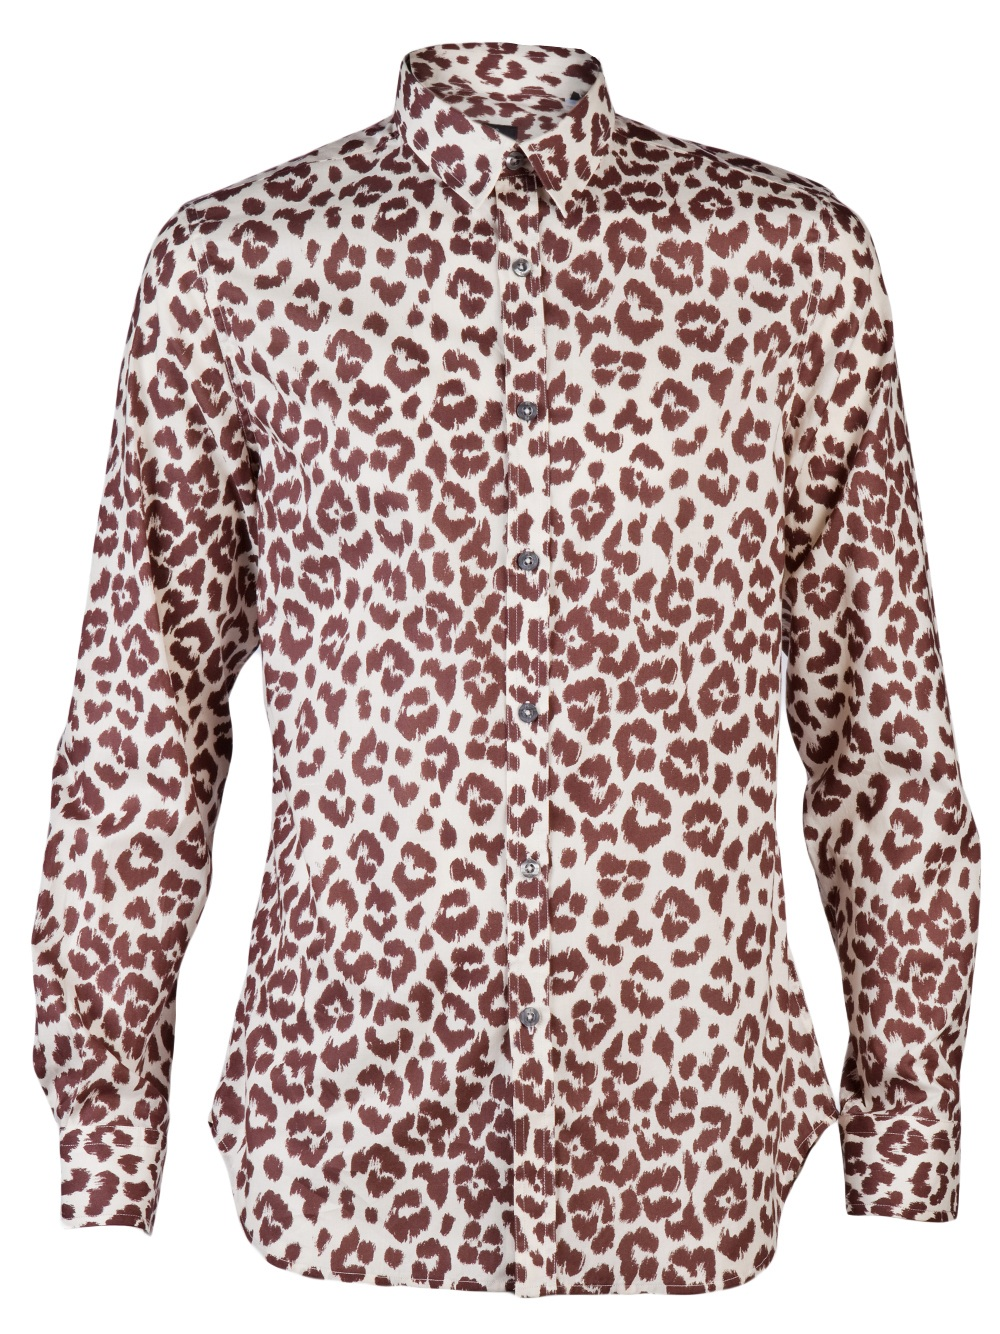 Find great deals on eBay for mens leopard print shirt. Shop with confidence.